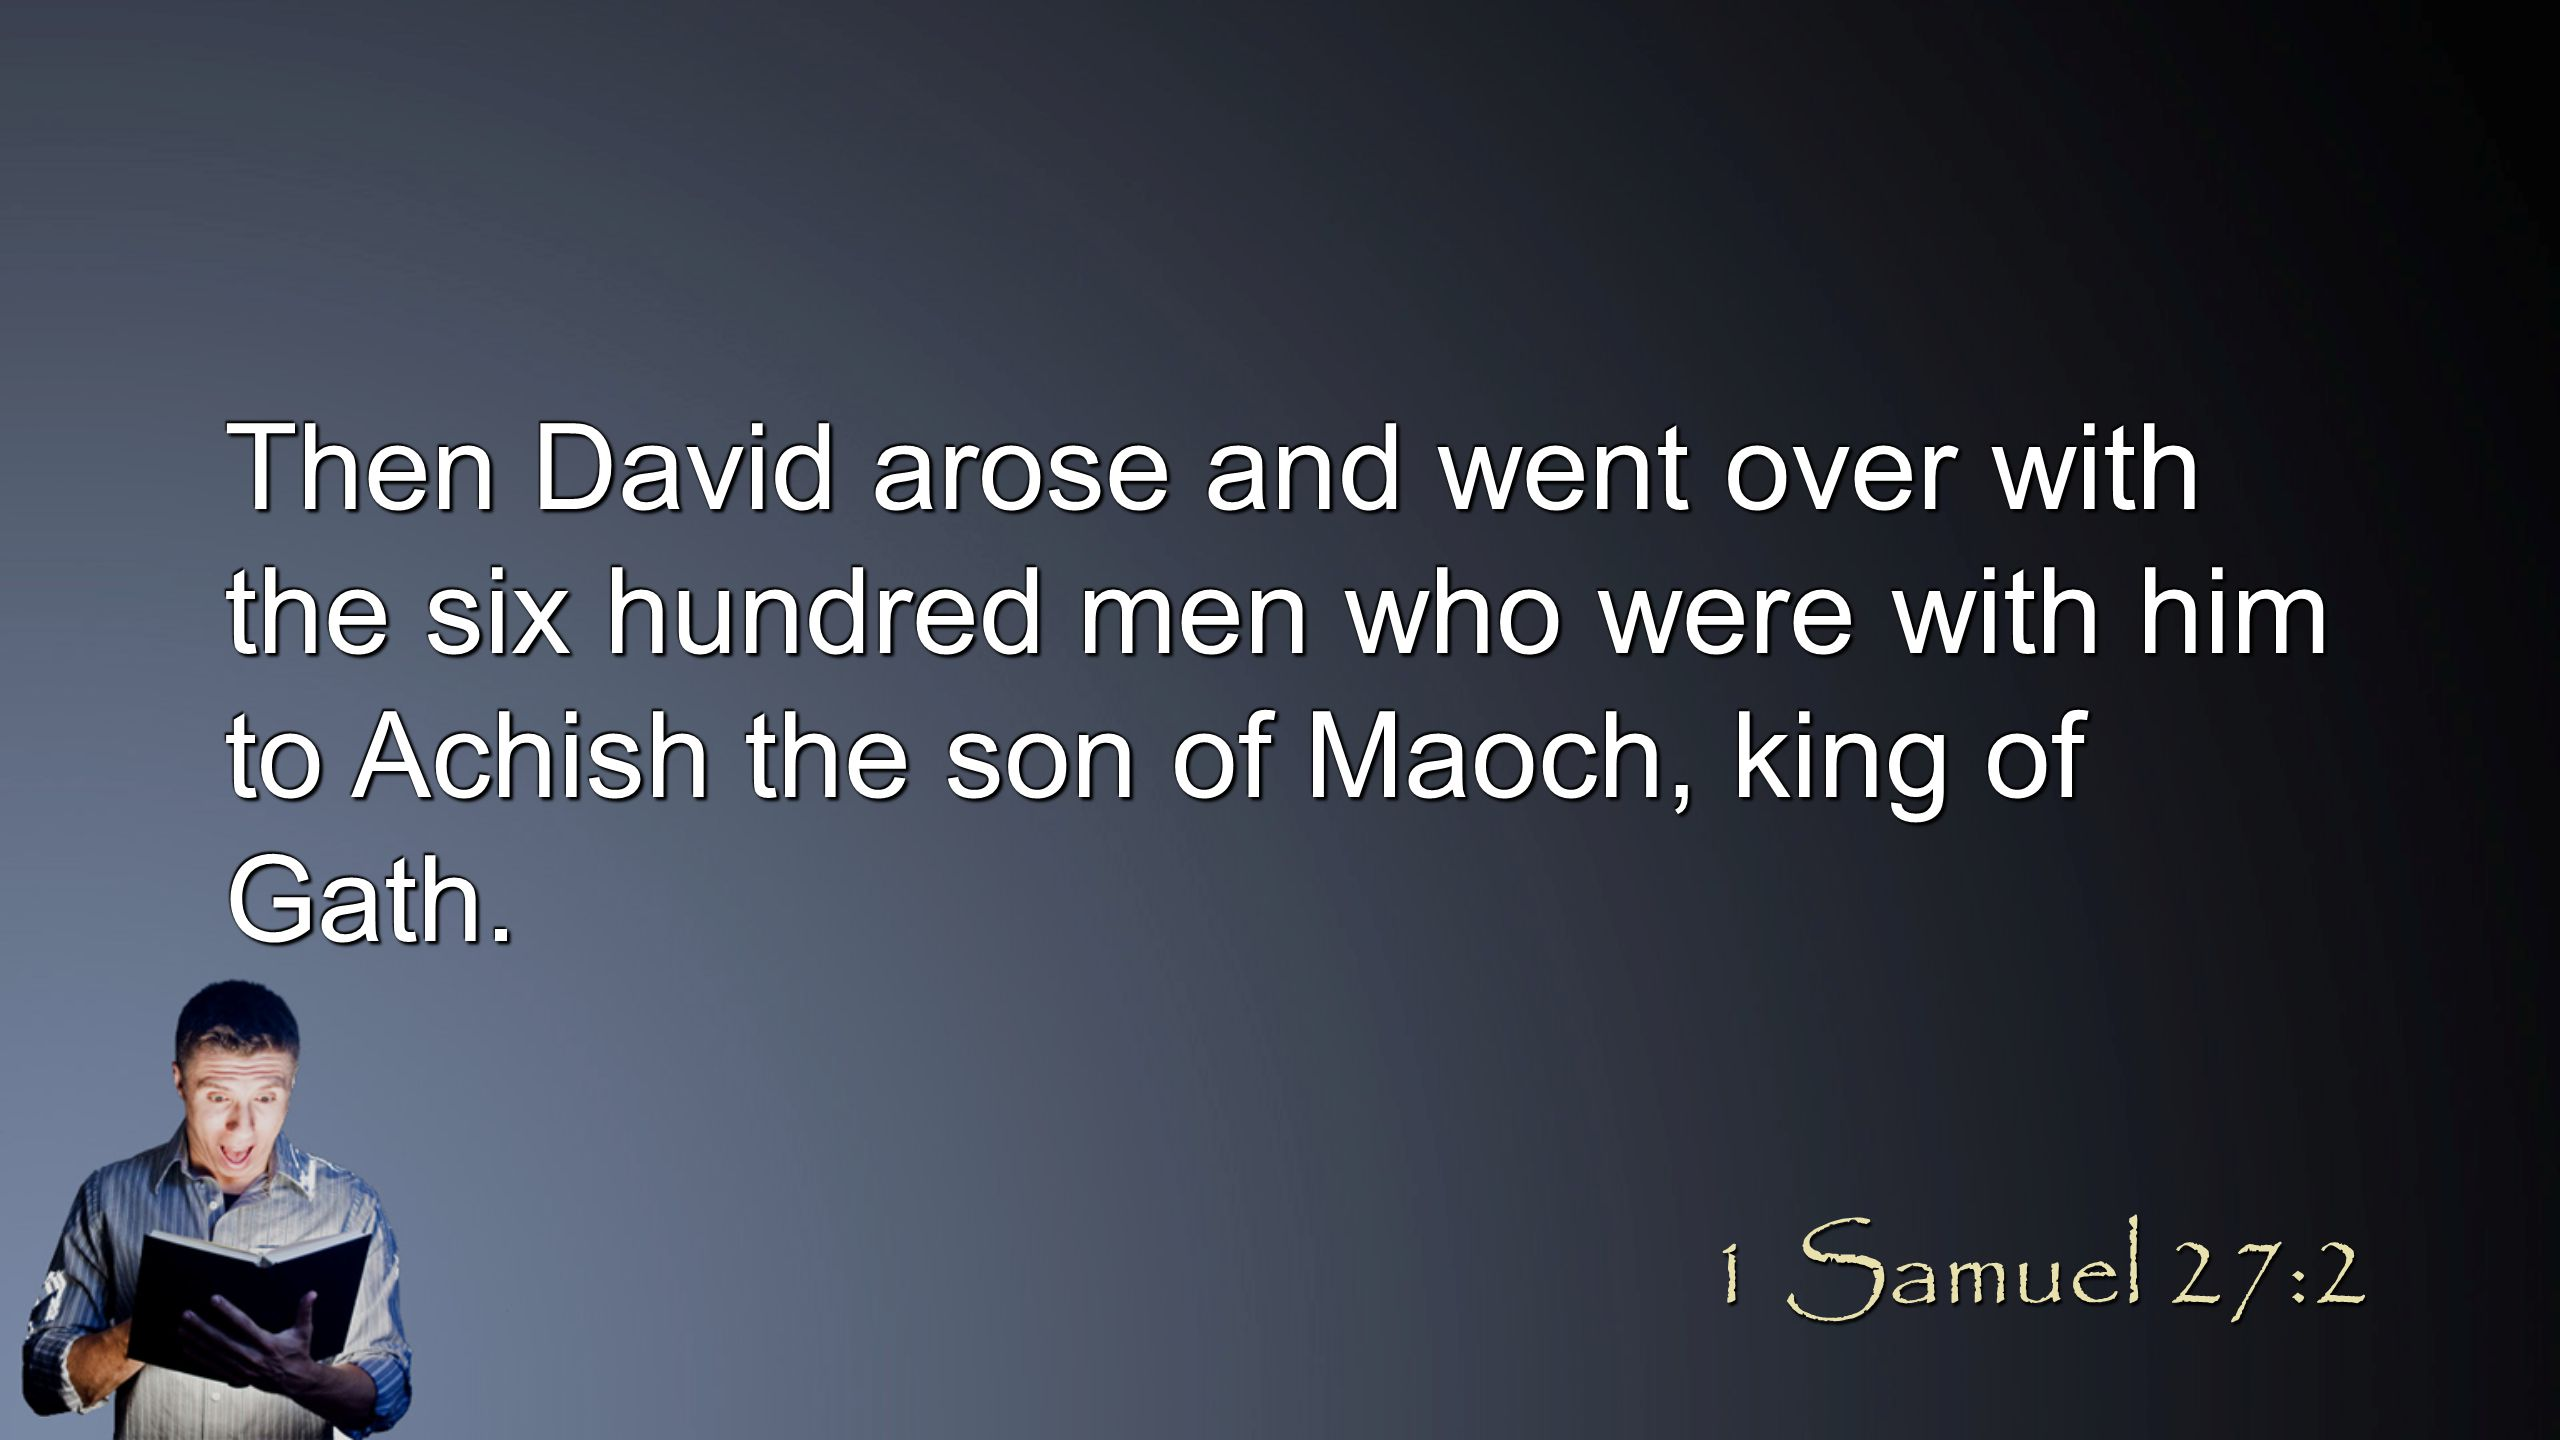 Then David arose and went over with the six hundred men who were with him to Achish the son of Maoch, king of Gath.